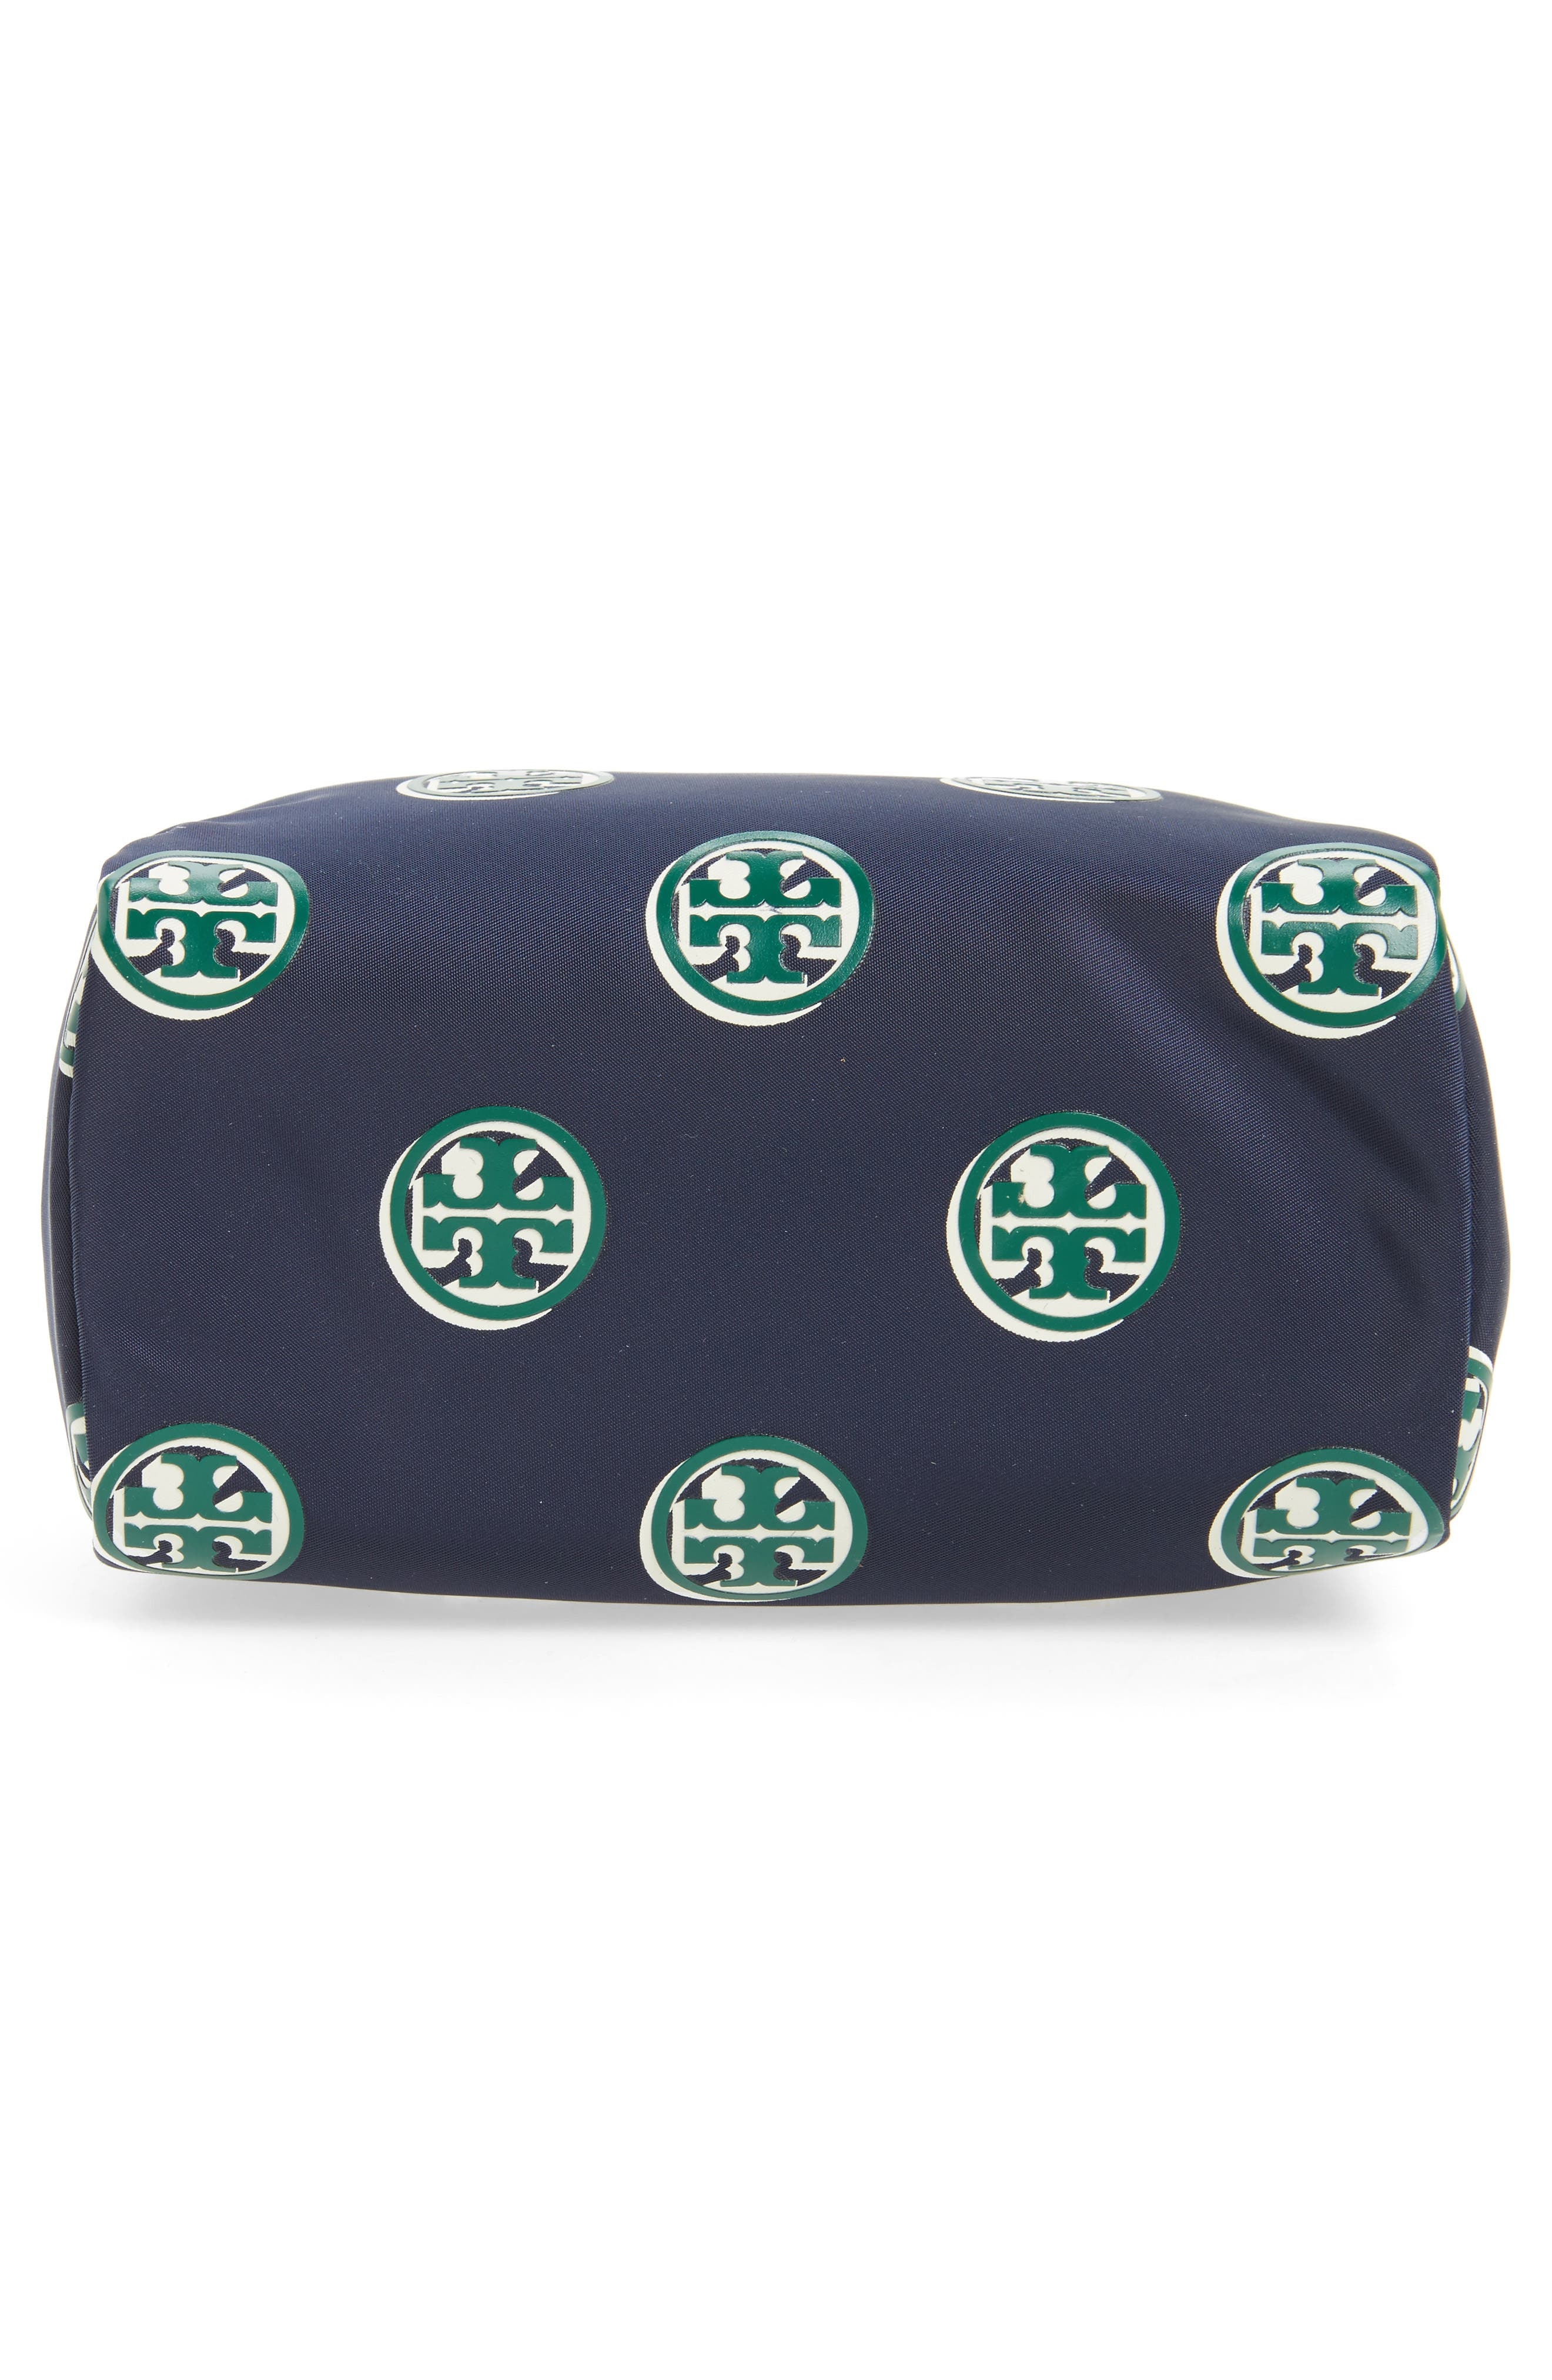 Quinn Printed Brigitte Cosmetics Case,                             Alternate thumbnail 5, color,                             Geo Print Navy